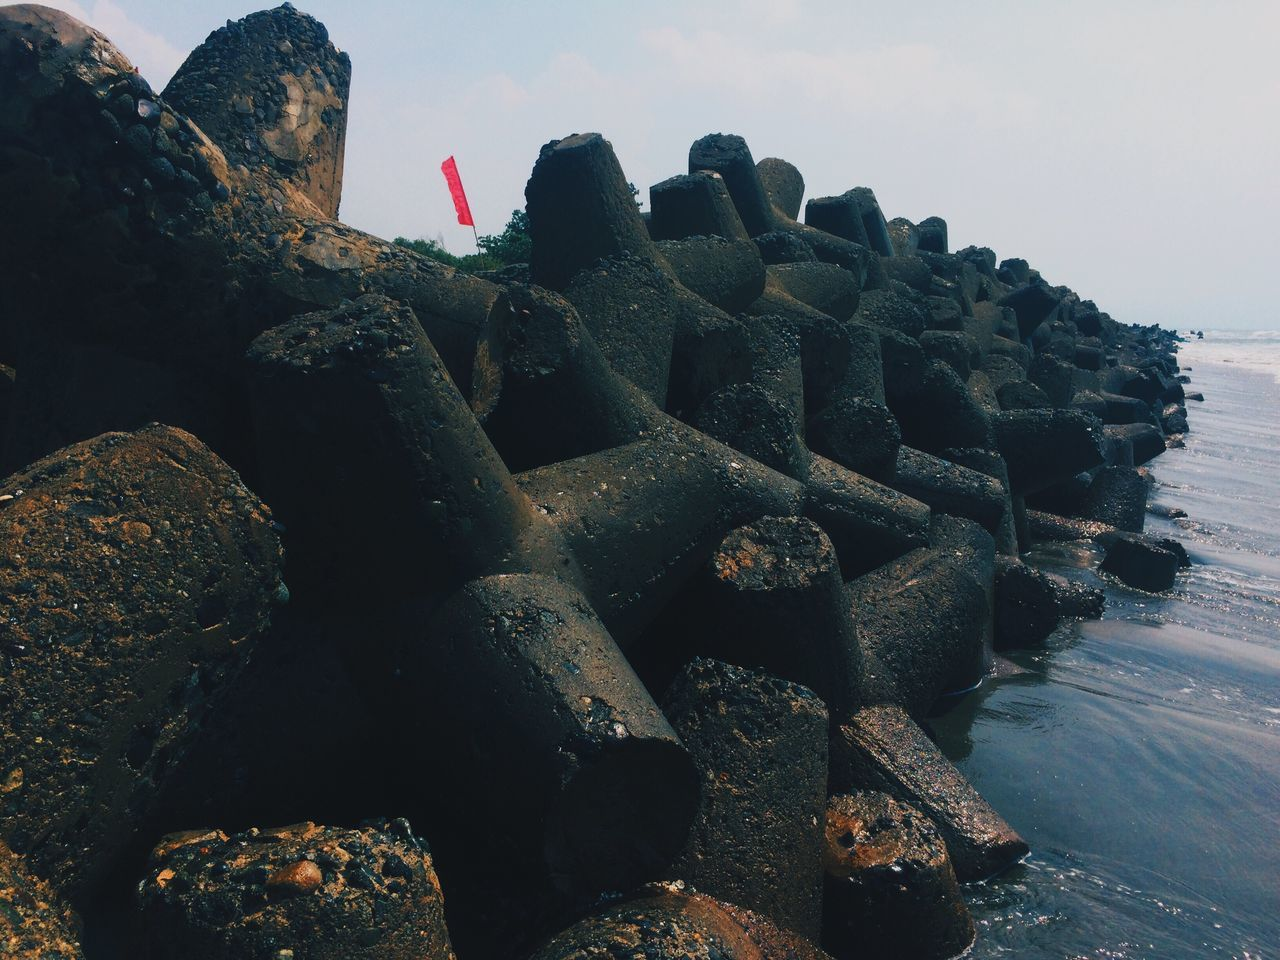 day, outdoors, rock - object, history, sea, no people, flag, patriotism, nature, beach, sky, groyne